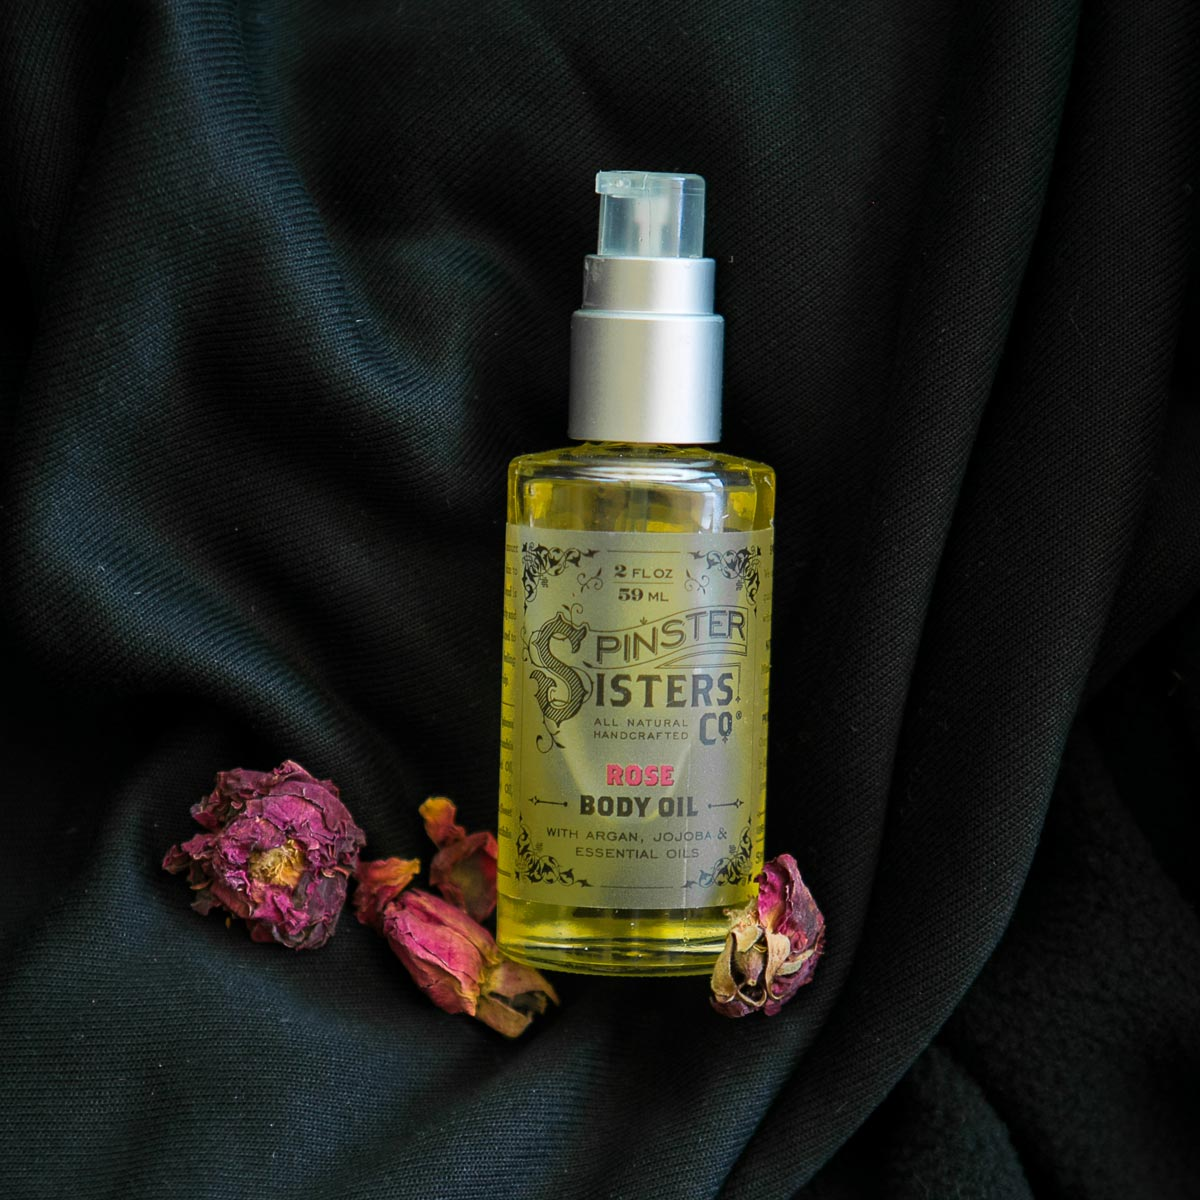 A clear bottle of yellow-hued Body Oil styled with dried rose petals